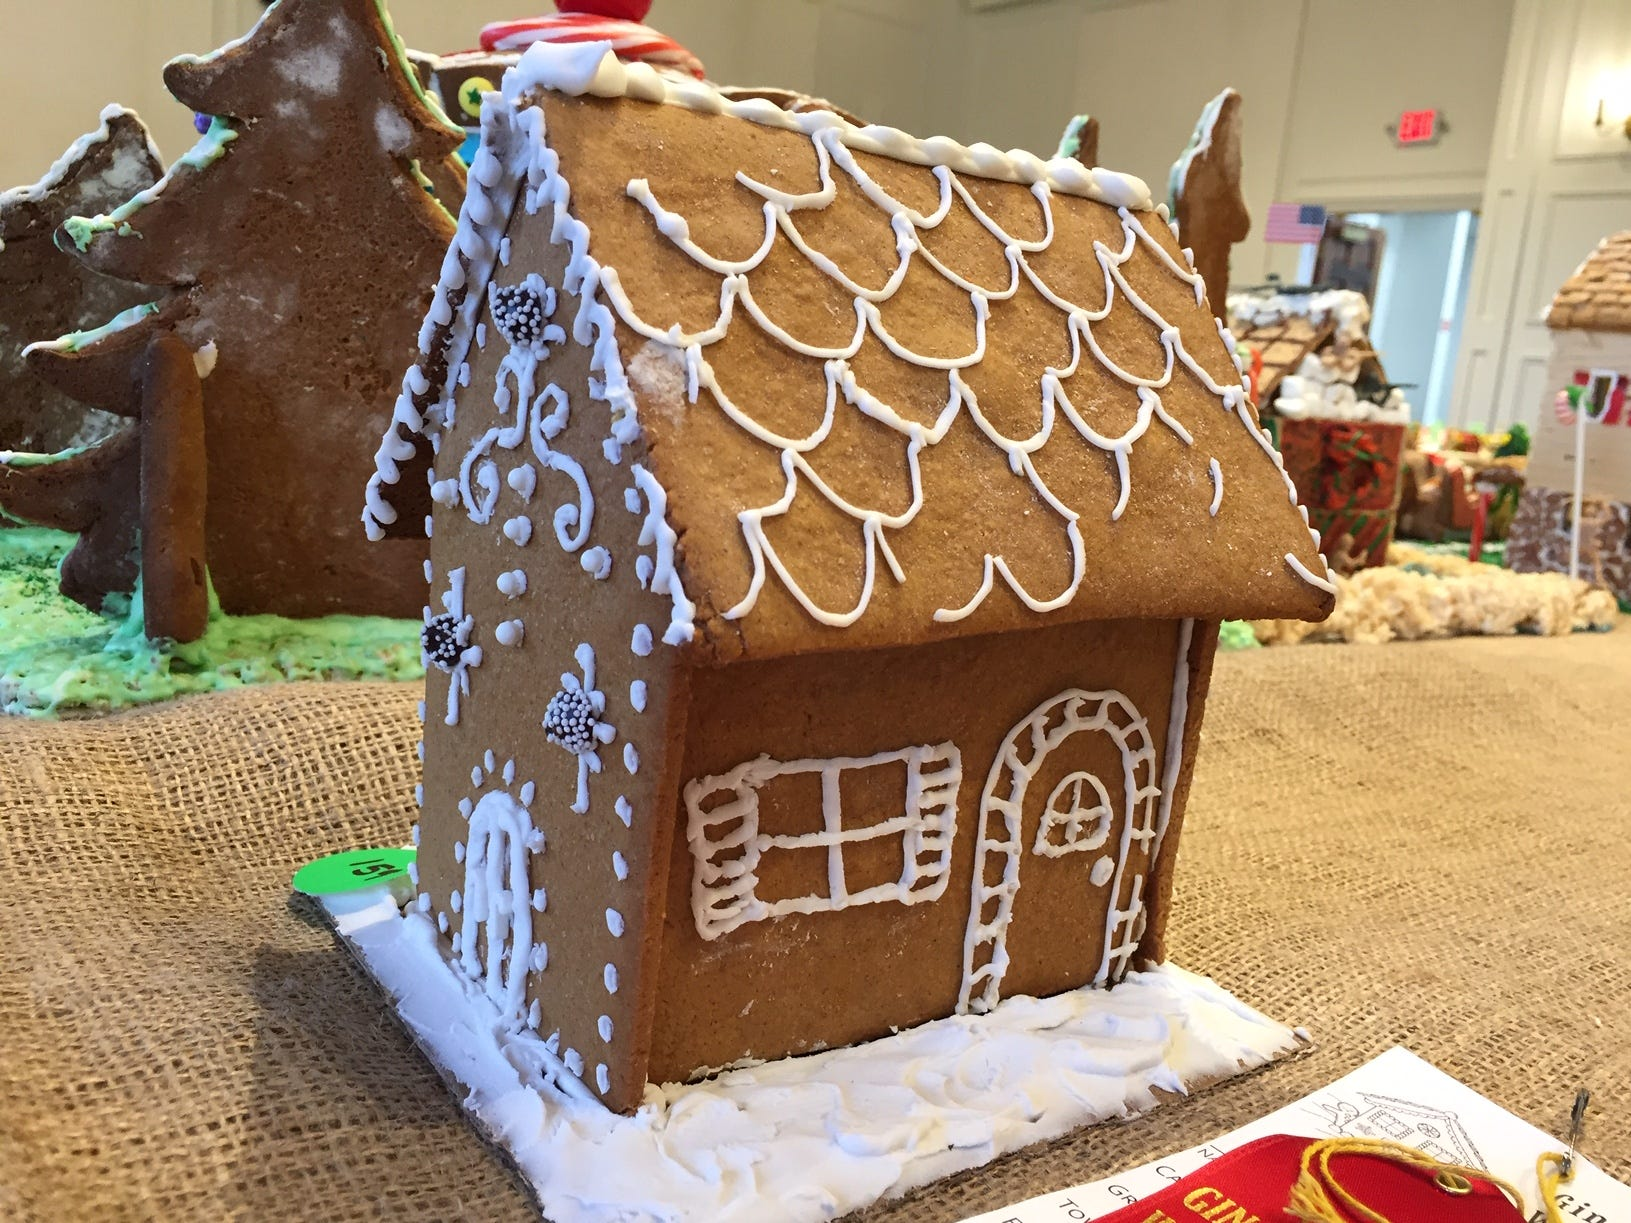 """The Clarkza House"" by Laura Jean and Tess of Morristown, grade six, at the Gingerbread Wonderland at the Frelinghuysen Arboretum. Child category."